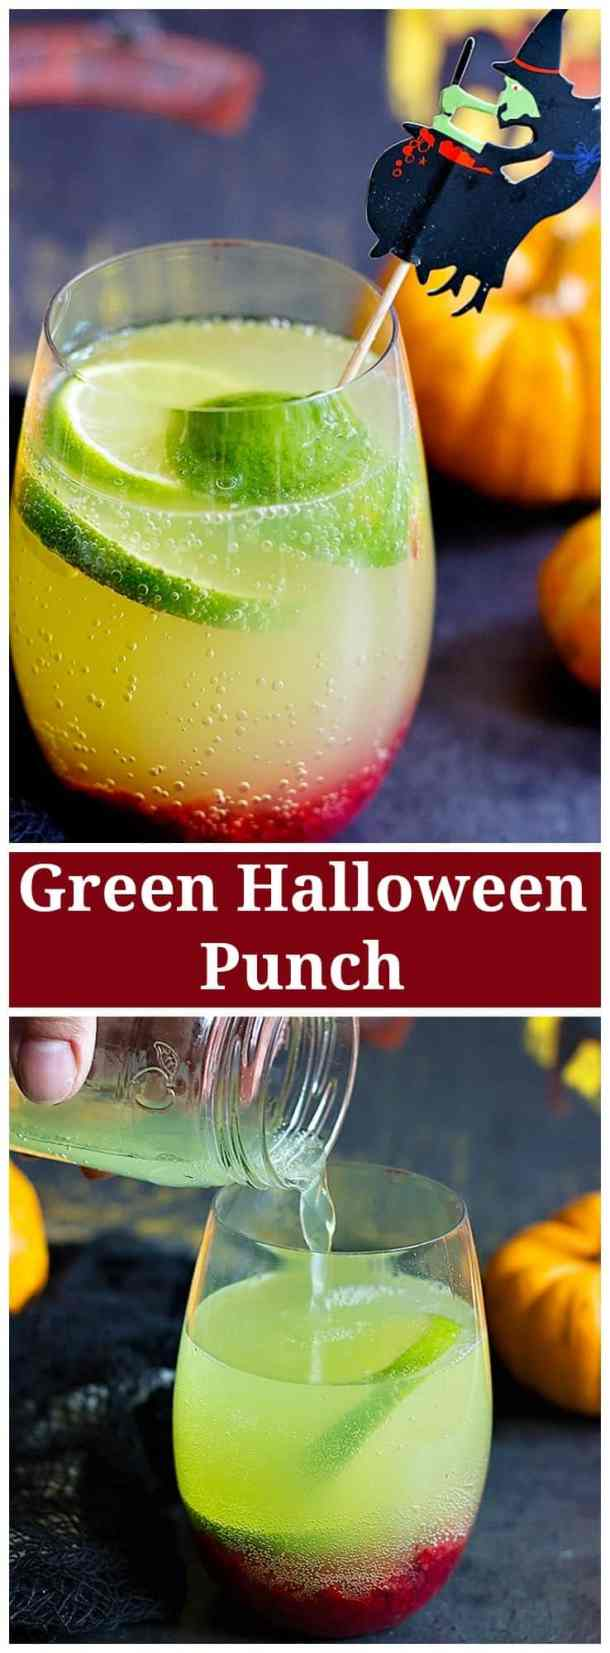 Make this spooky Green Halloween Punch for your Halloween party and have fun. From unicornsinthekitchen.com #Halloween #punchdrink